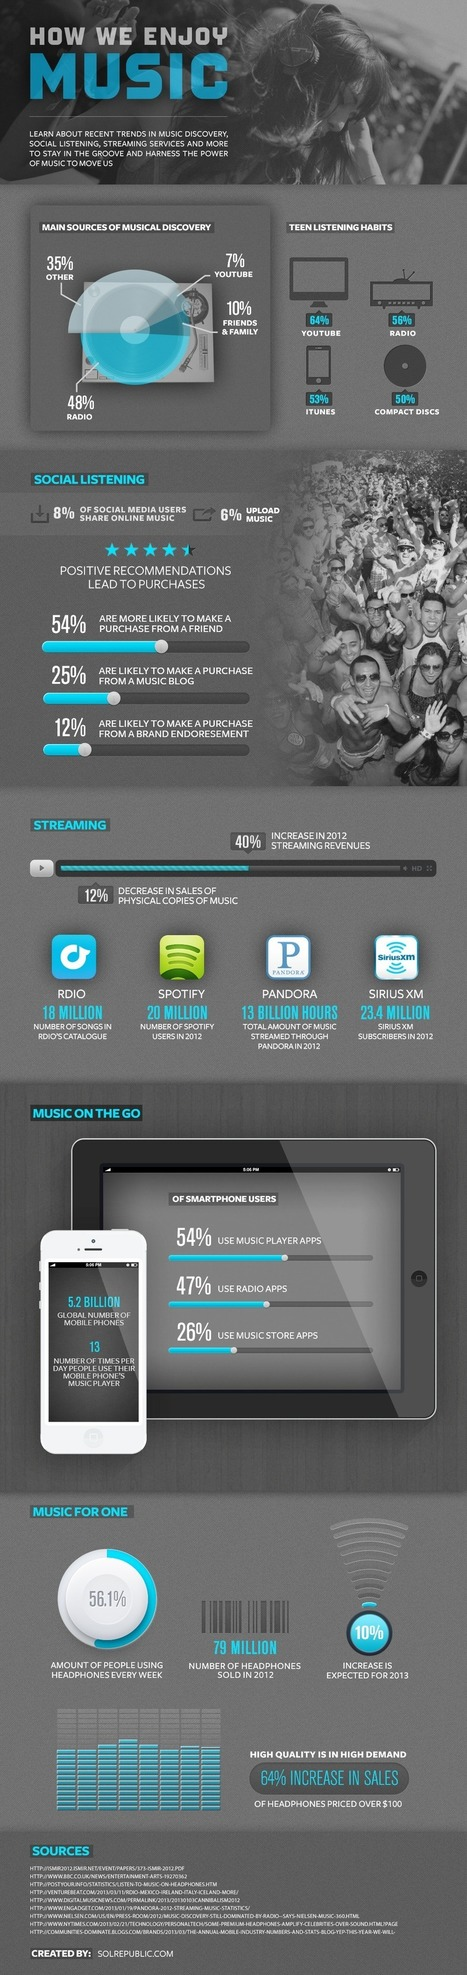 How We Discover New Music Today [INFOGRAPHIC] | MUSIC:ENTER | Scoop.it